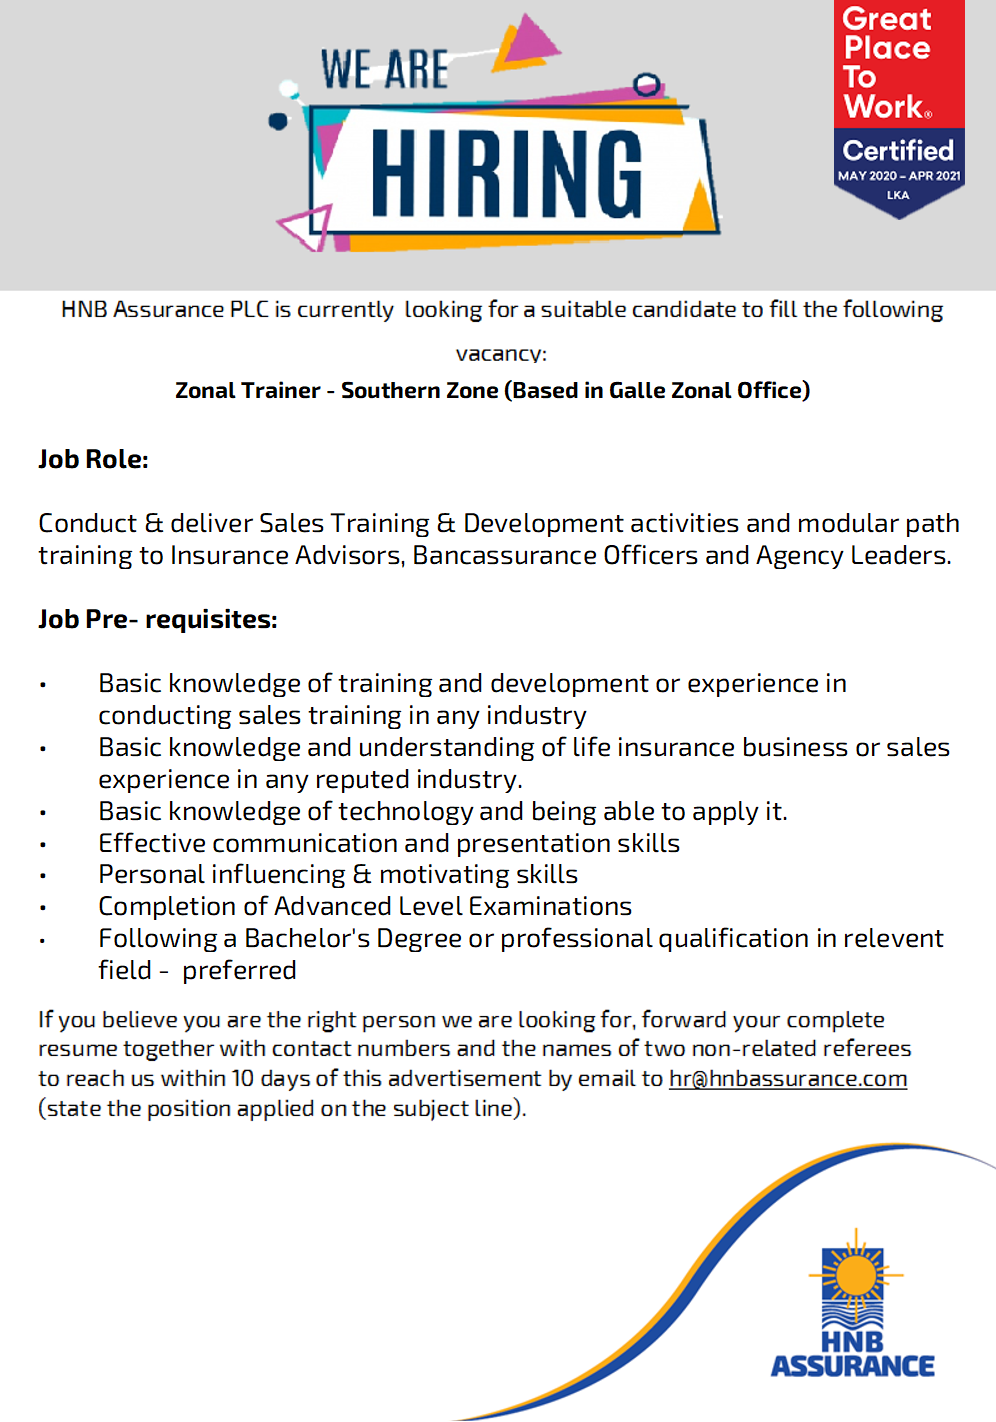 Zonal Trainer - Southern Zone